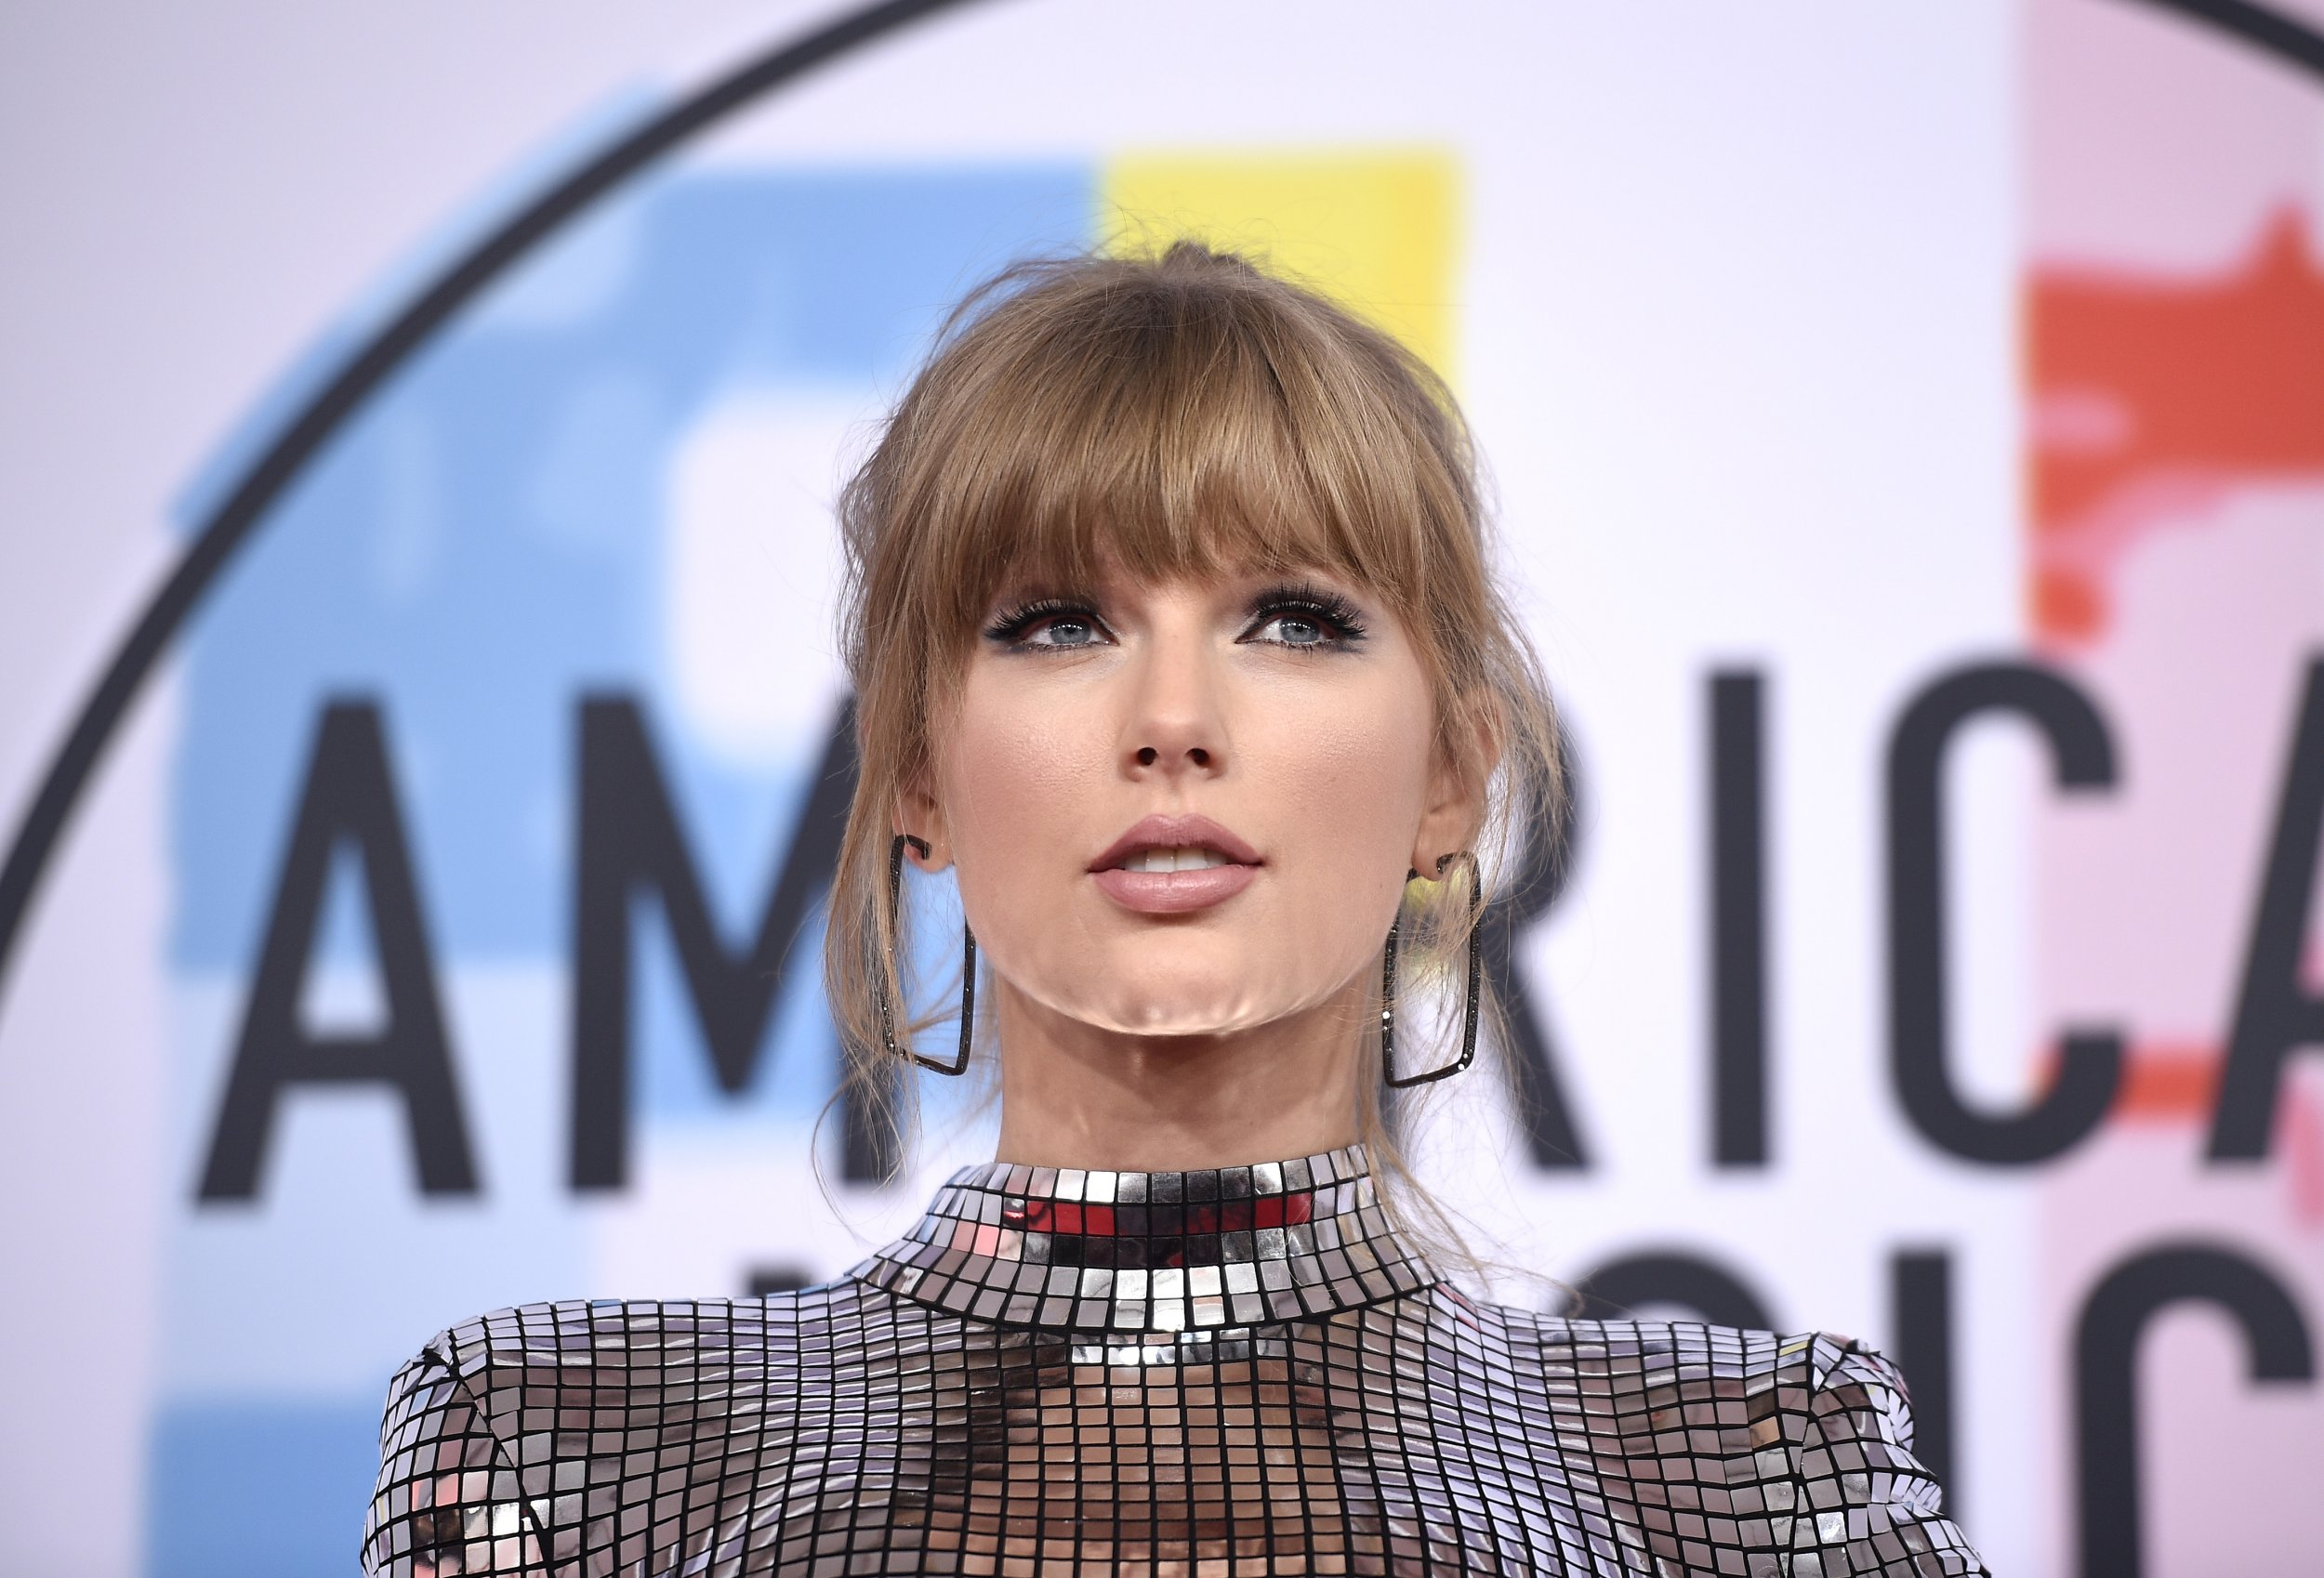 Taylor Swift teaches fans how to vote ahead of midterm elections